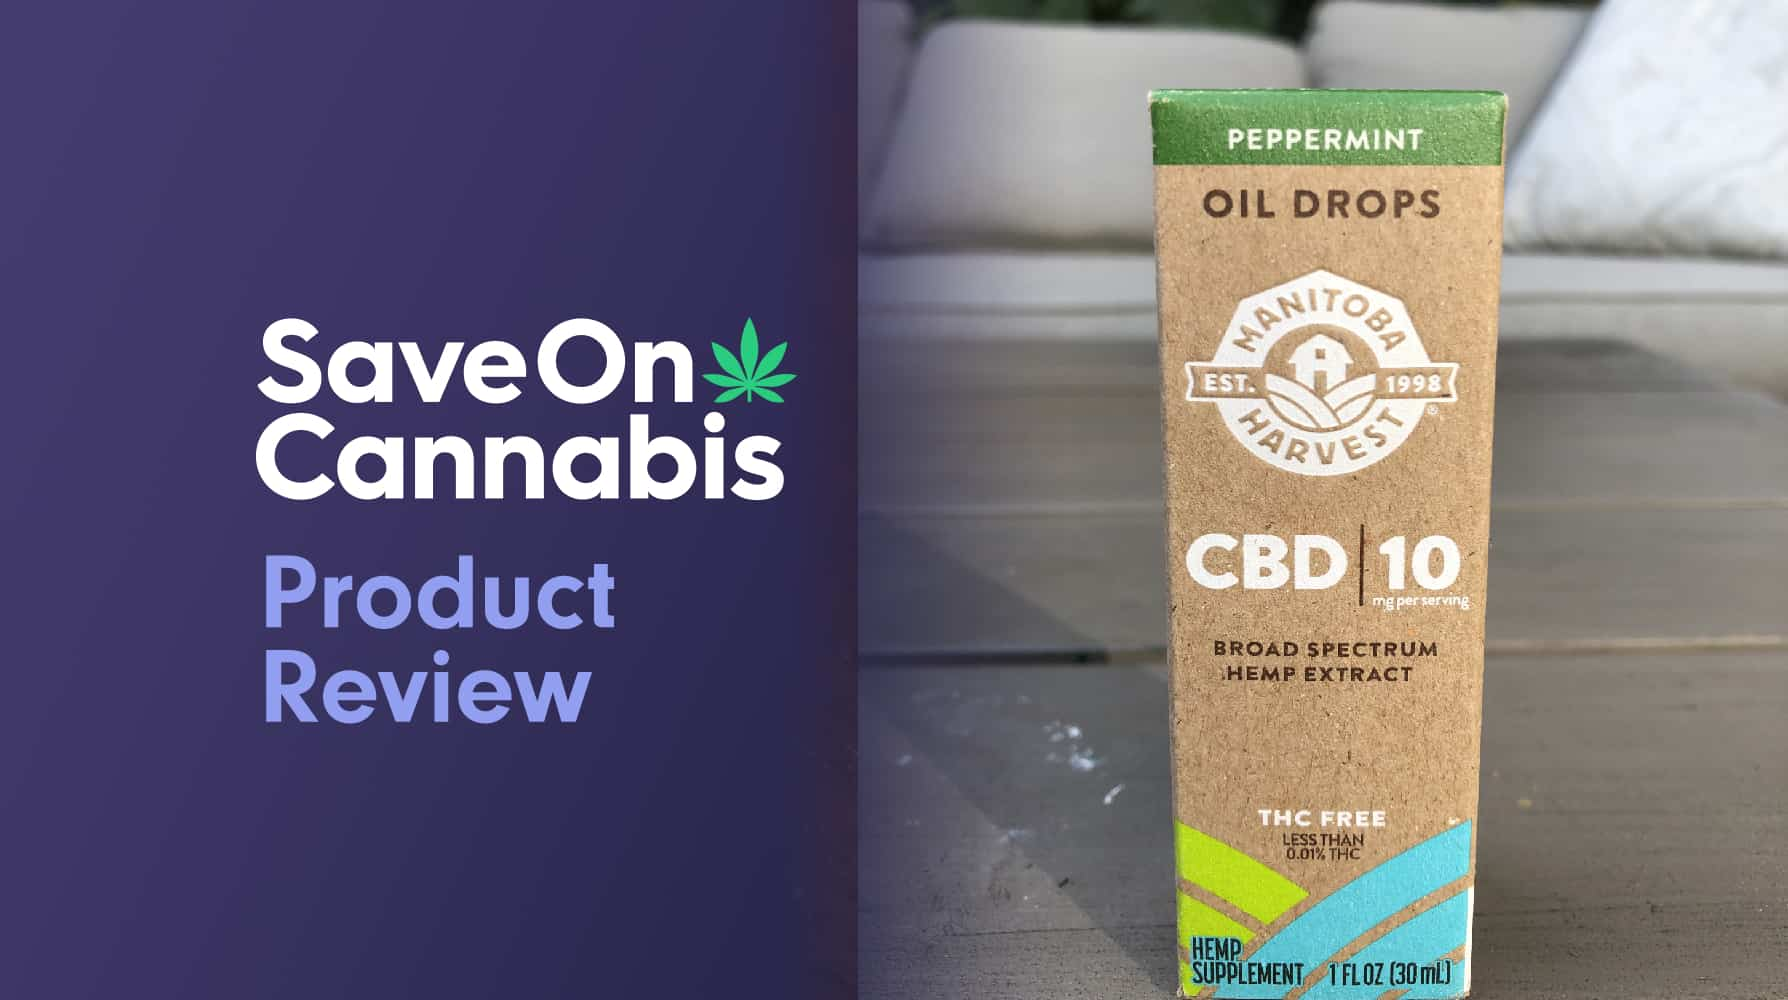 manitoba harvest peppermint cbd oil drops 300 mg save on cannabis website